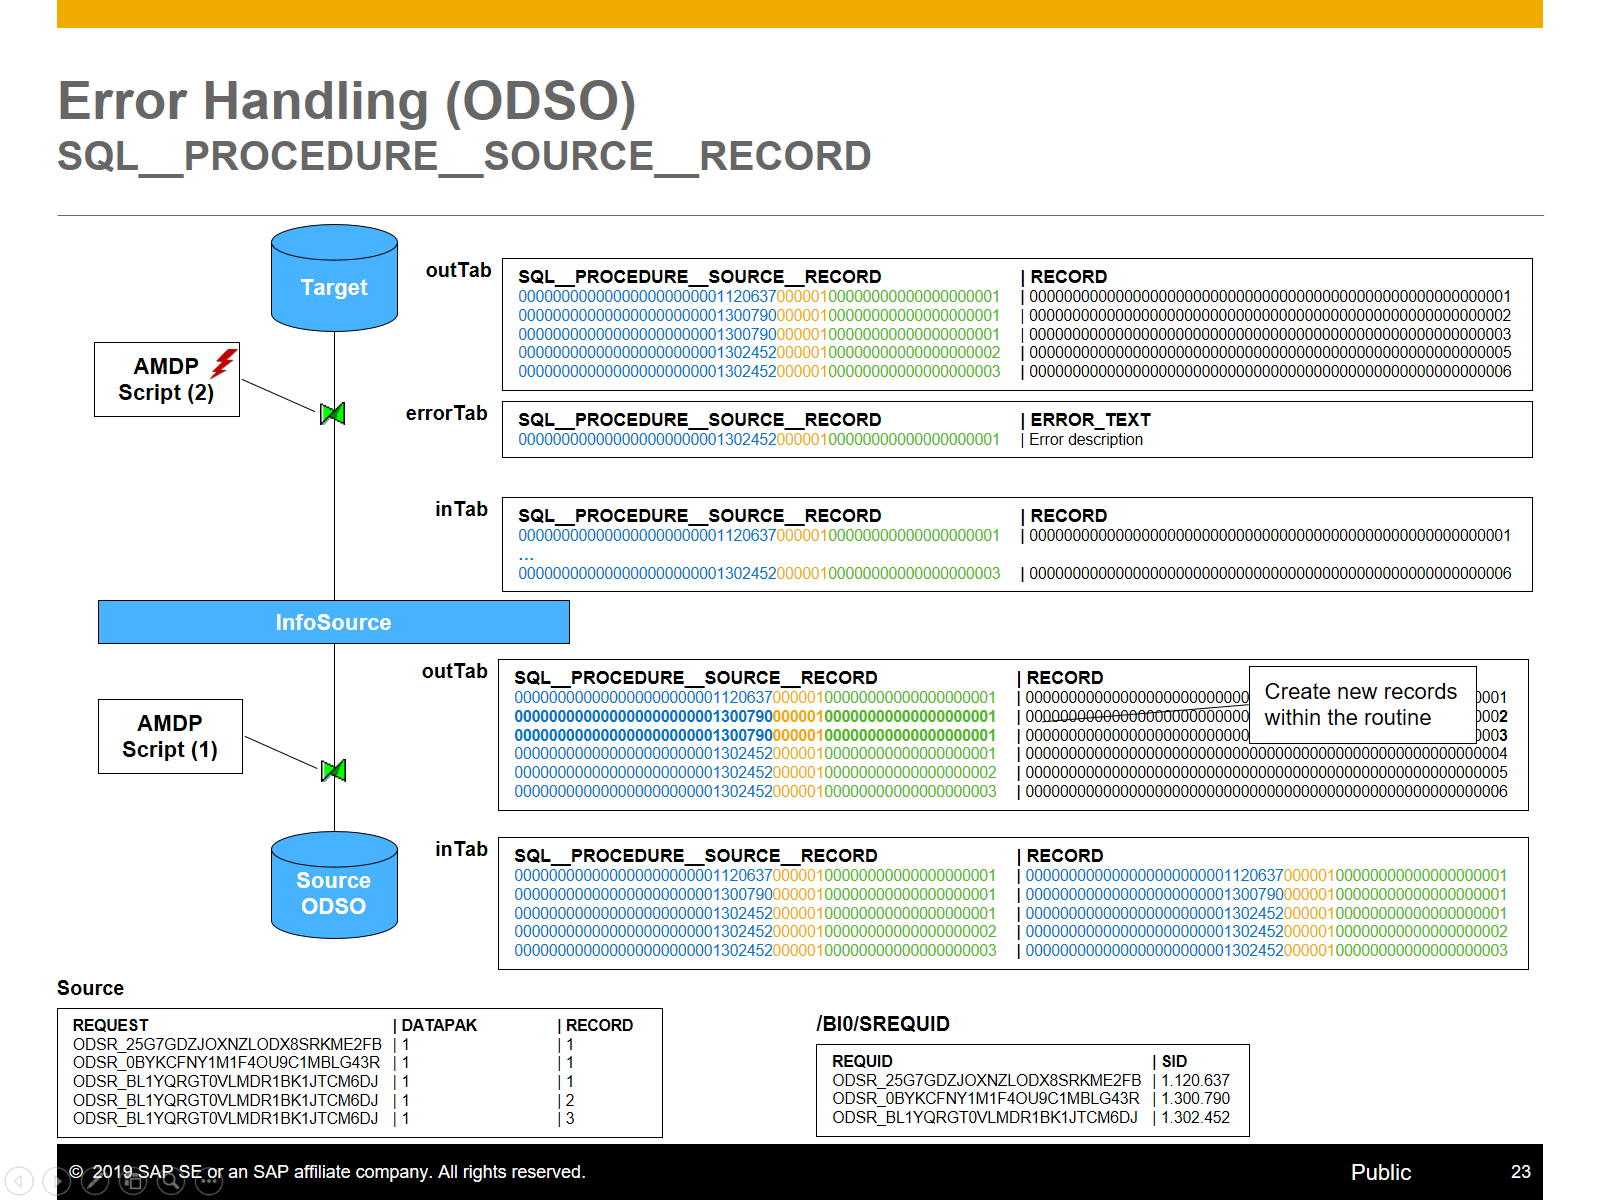 HANA based BW Transformation – New features delivered by